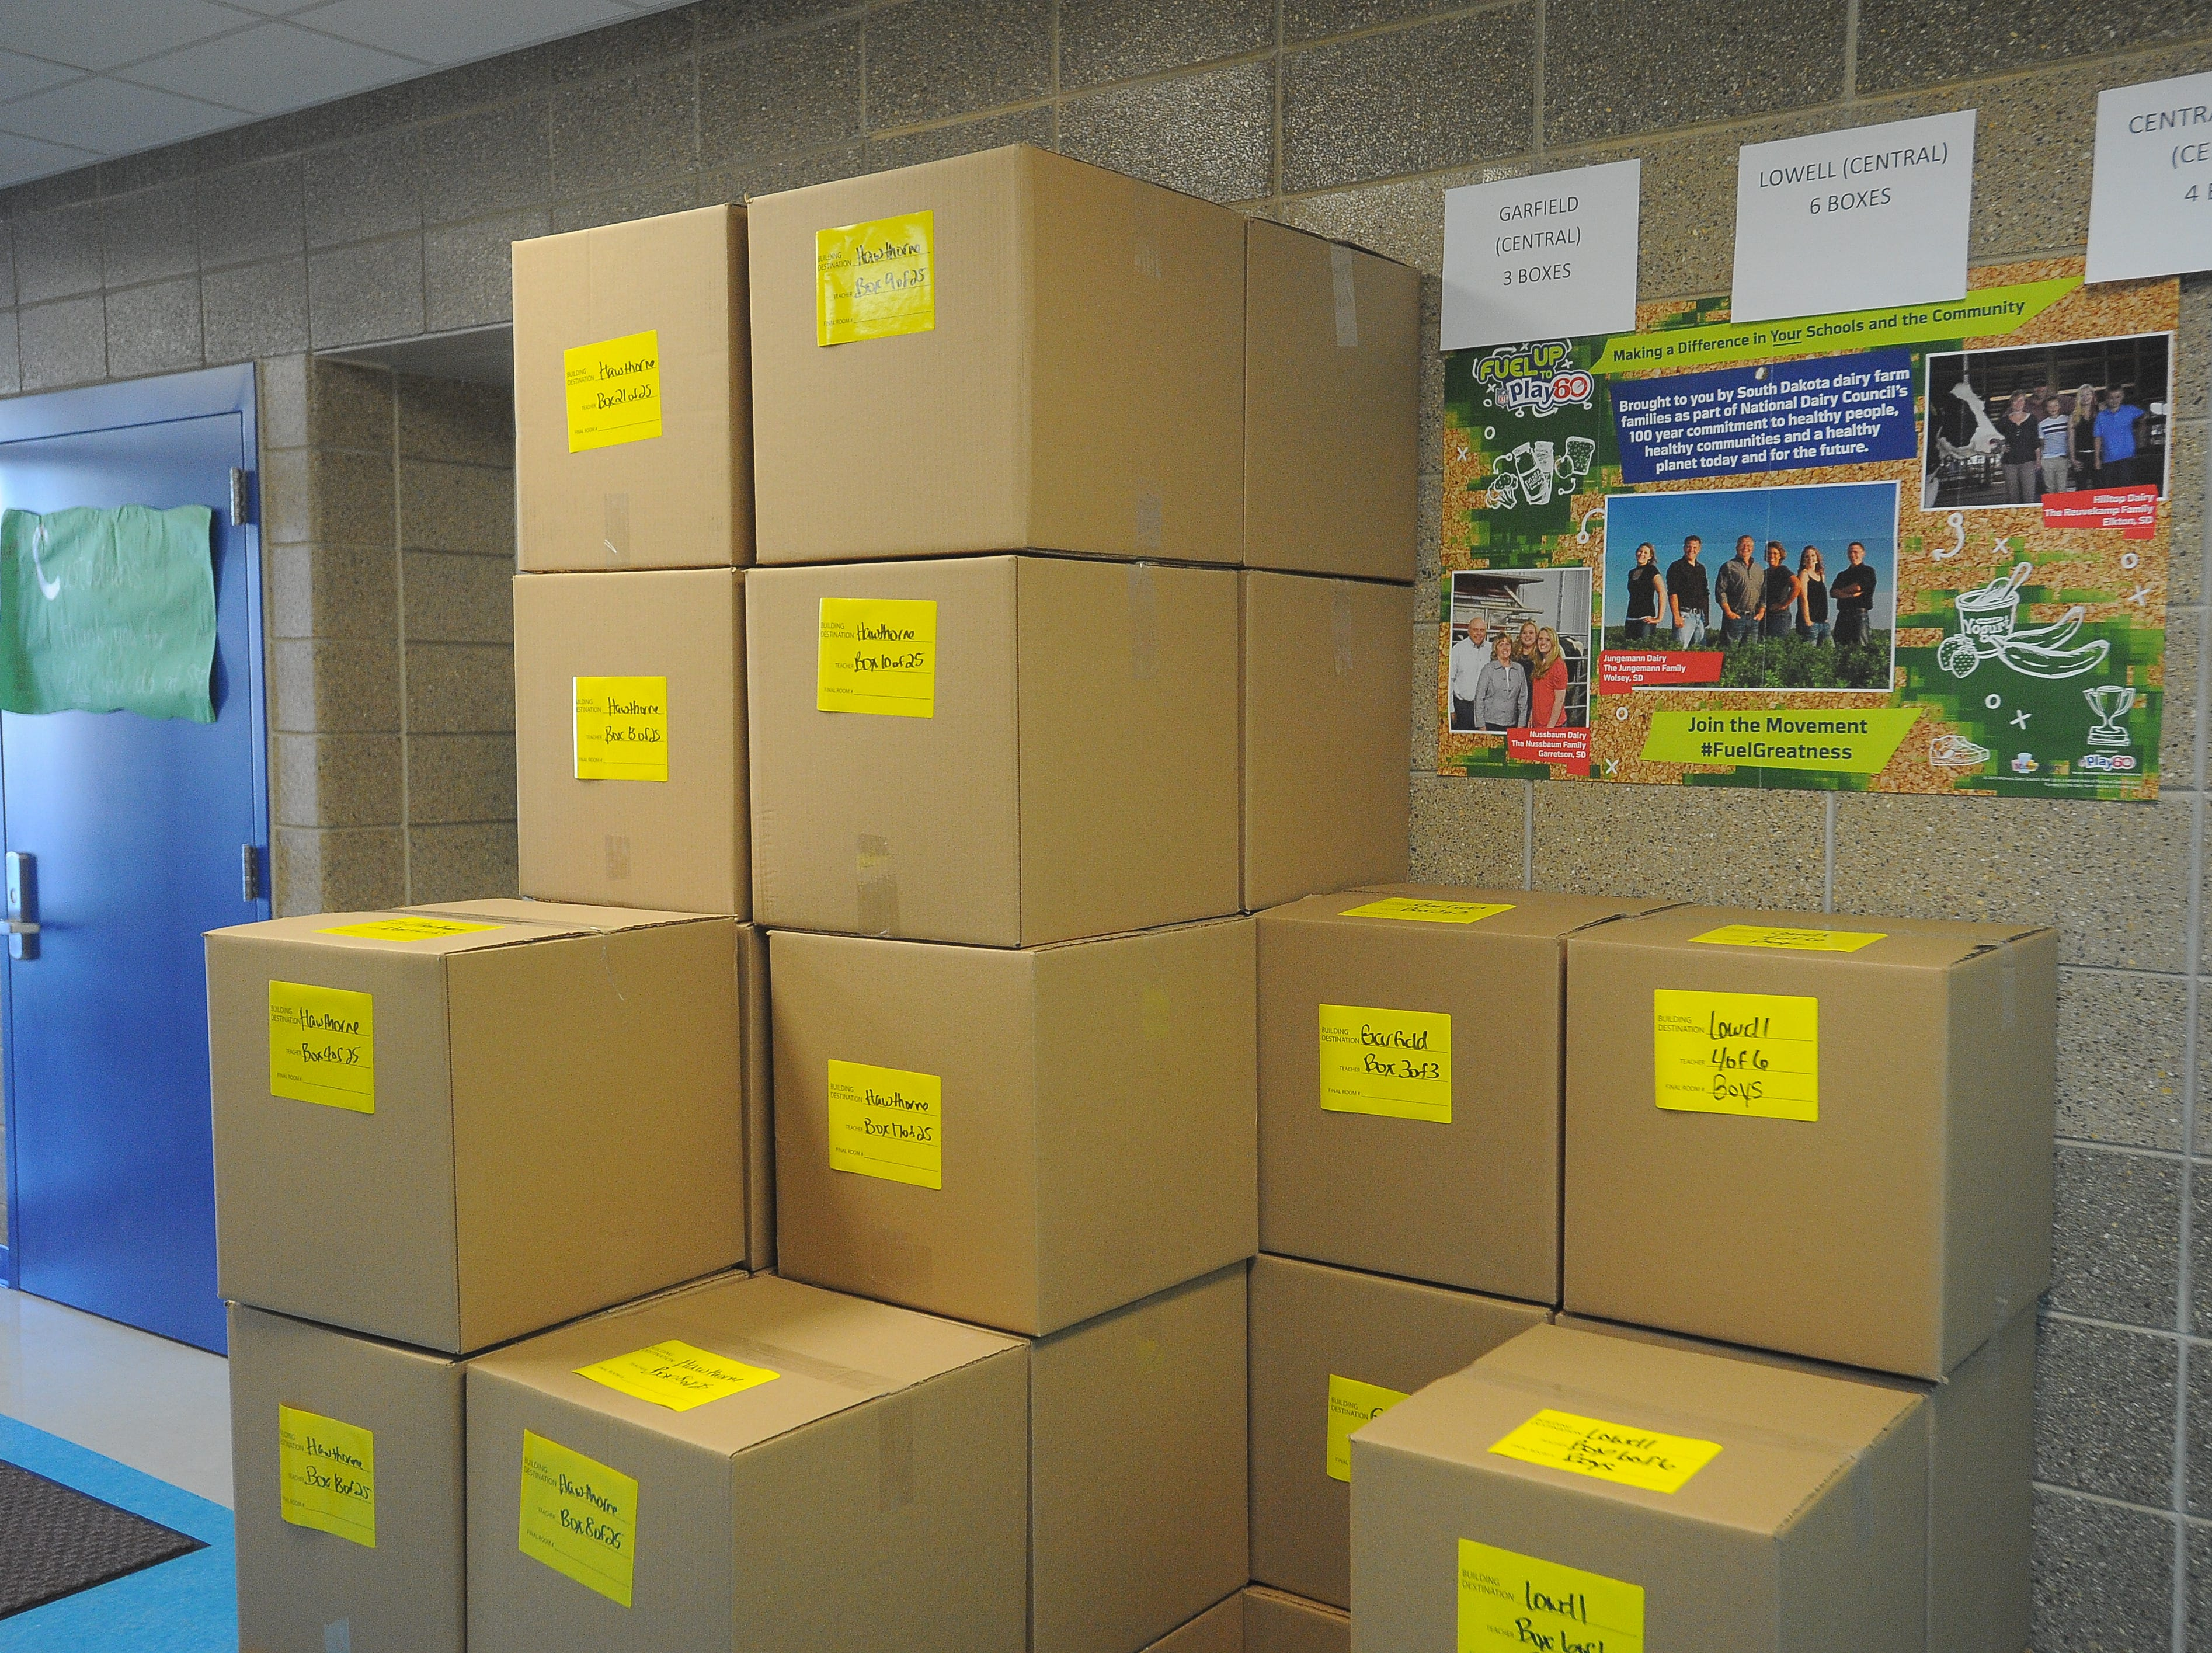 Boxes full of tied blankets are ready to be delivered to Sioux Falls schools. Blankets were made Saturday, Dec. 8, 2018 as part of Project Warm-Up at Sonia Sotomayor Elementary.